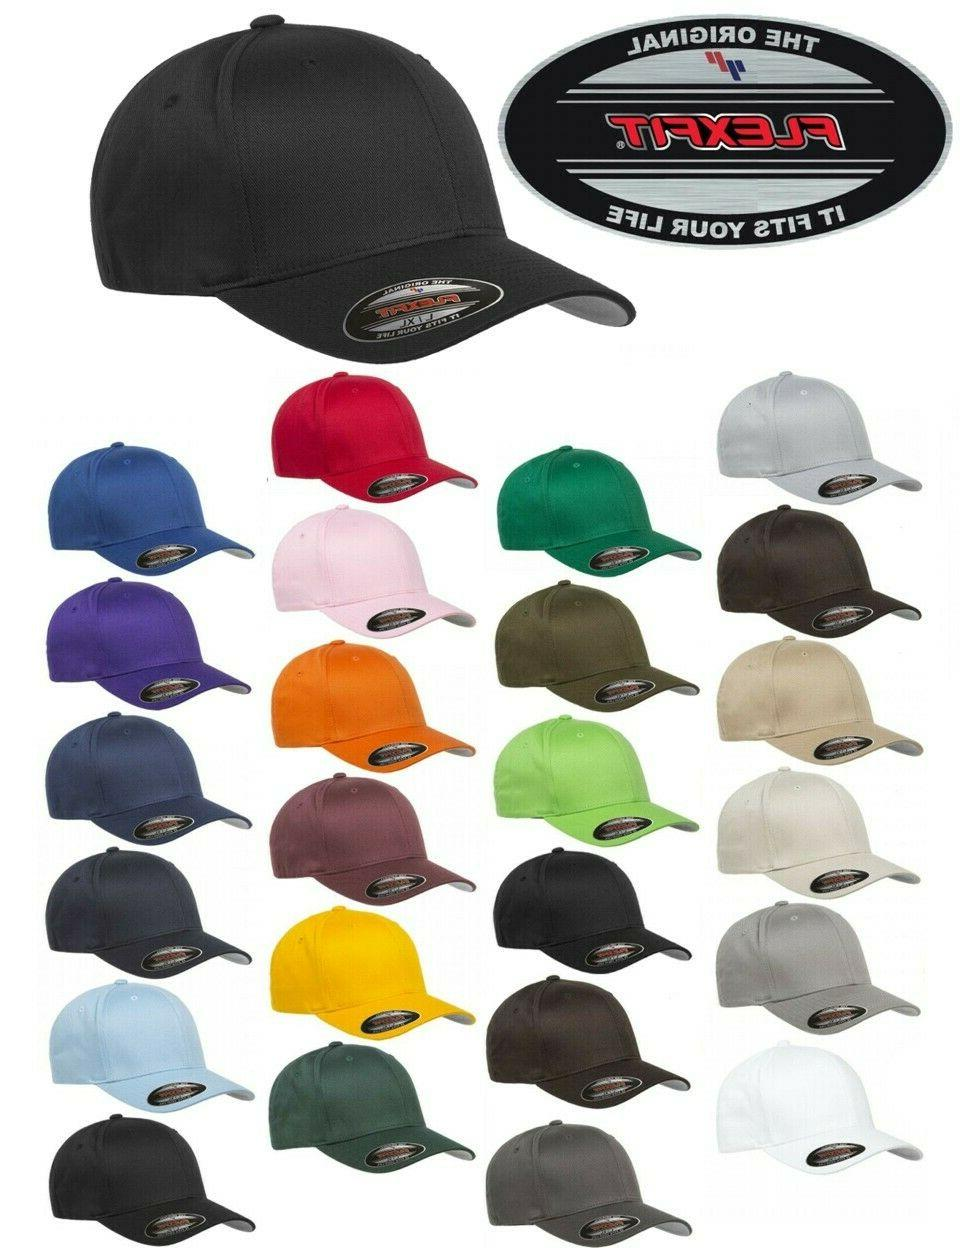 FLEXFIT Classic 6-Panel Fitted HAT S/M & All Colors!